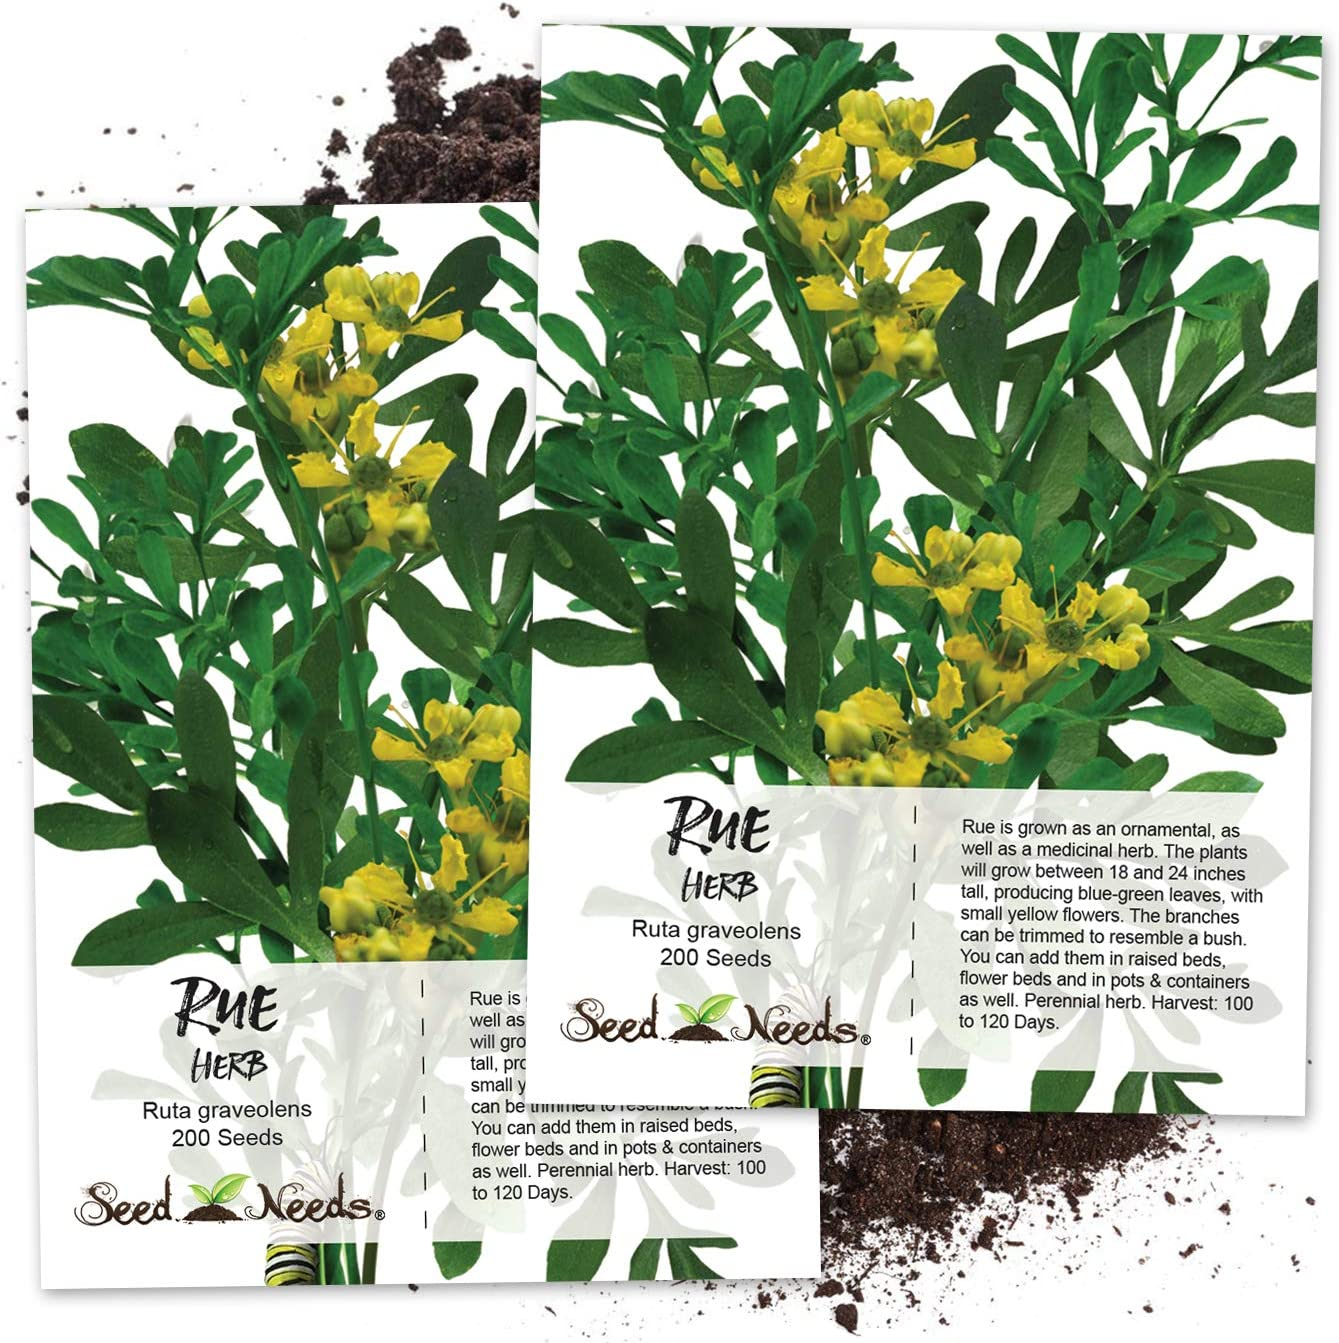 Amazon Com Seed Needs Rue Herb Ruta Graveolens Twin Pack Of